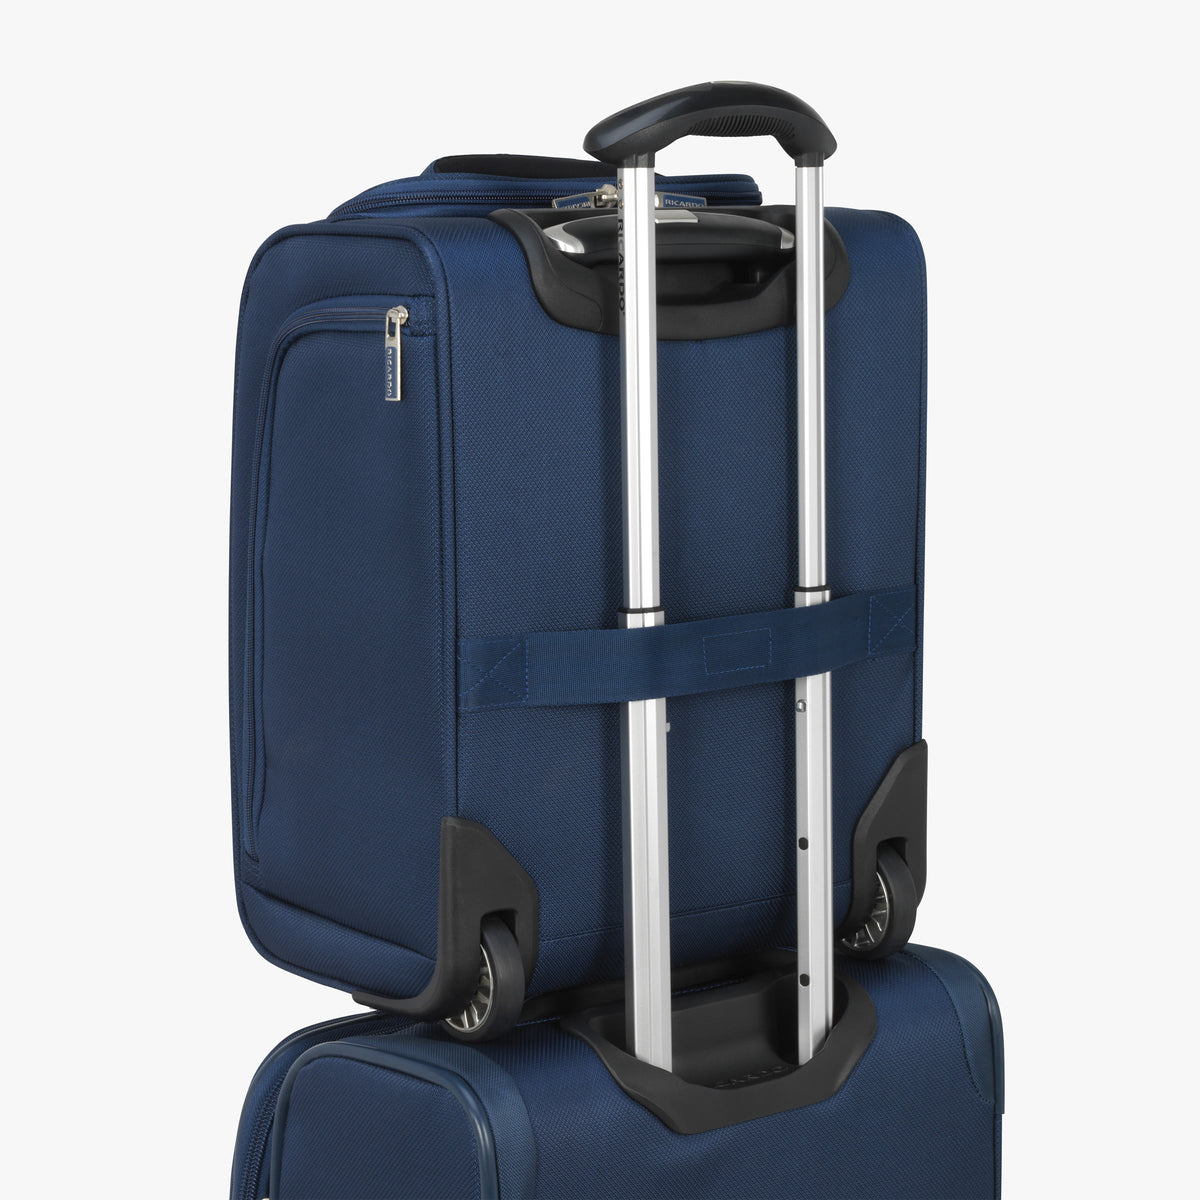 2fc21a24324d Mar Vista 2.0 Carry On Under Seat Luggage - Rolling Tote Bag – Ricardo  Beverly Hills